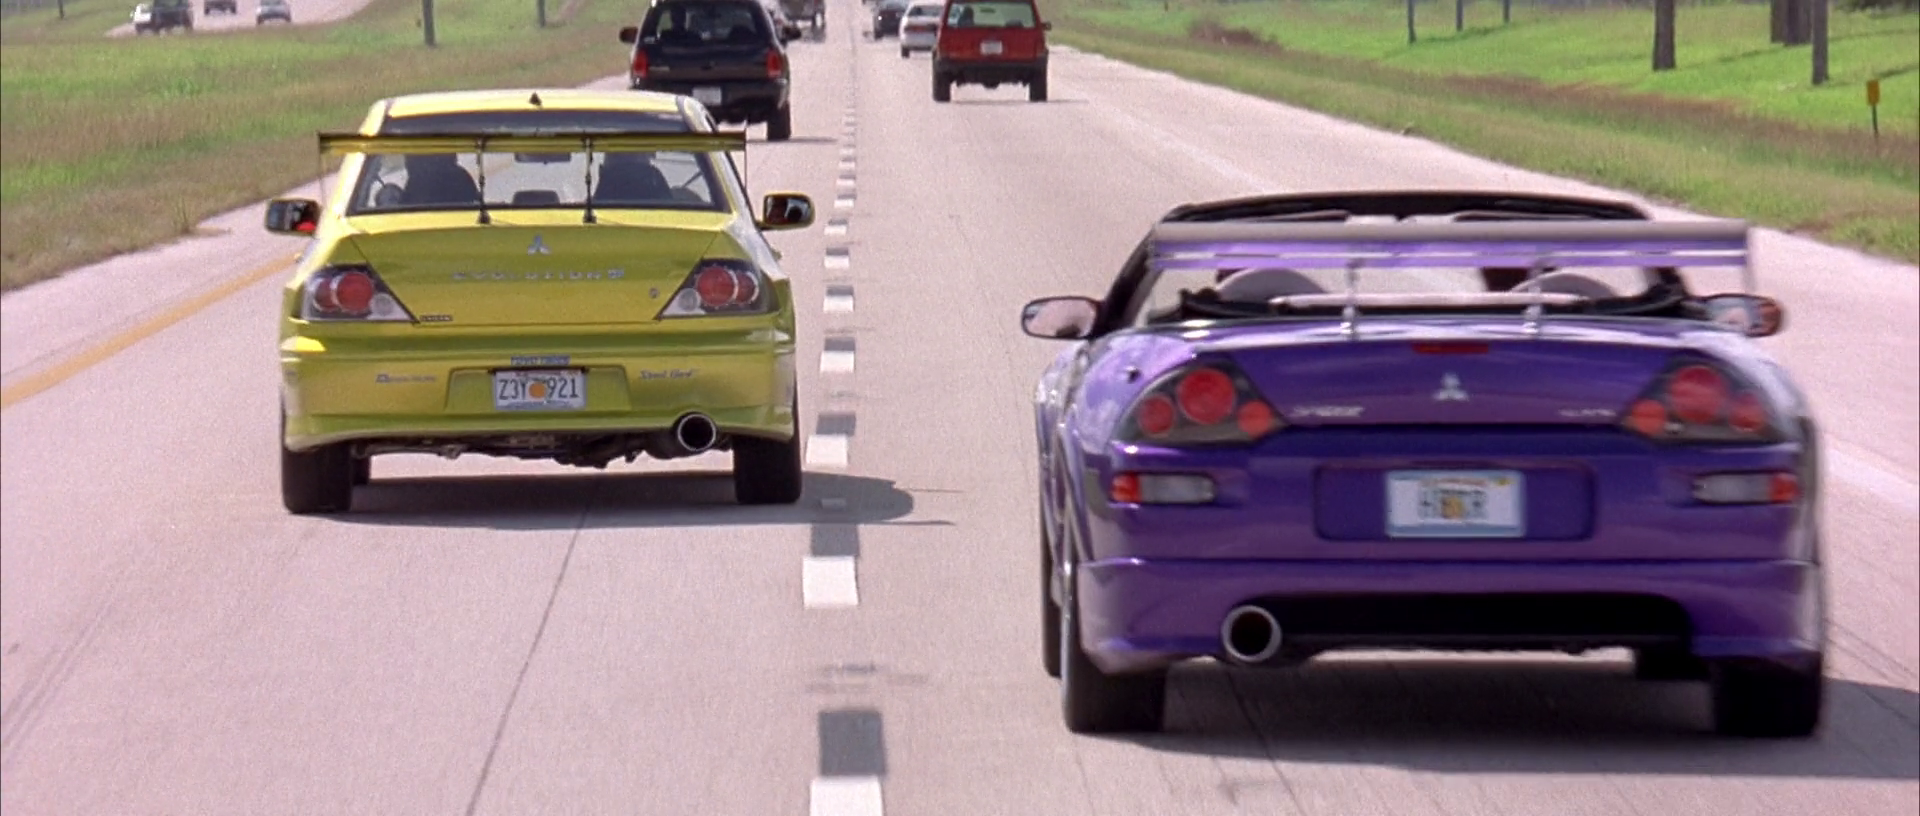 Image - Lancer EVO & Eclipse Spyder - On the Move (2).png | The Fast and the Furious Wiki ...